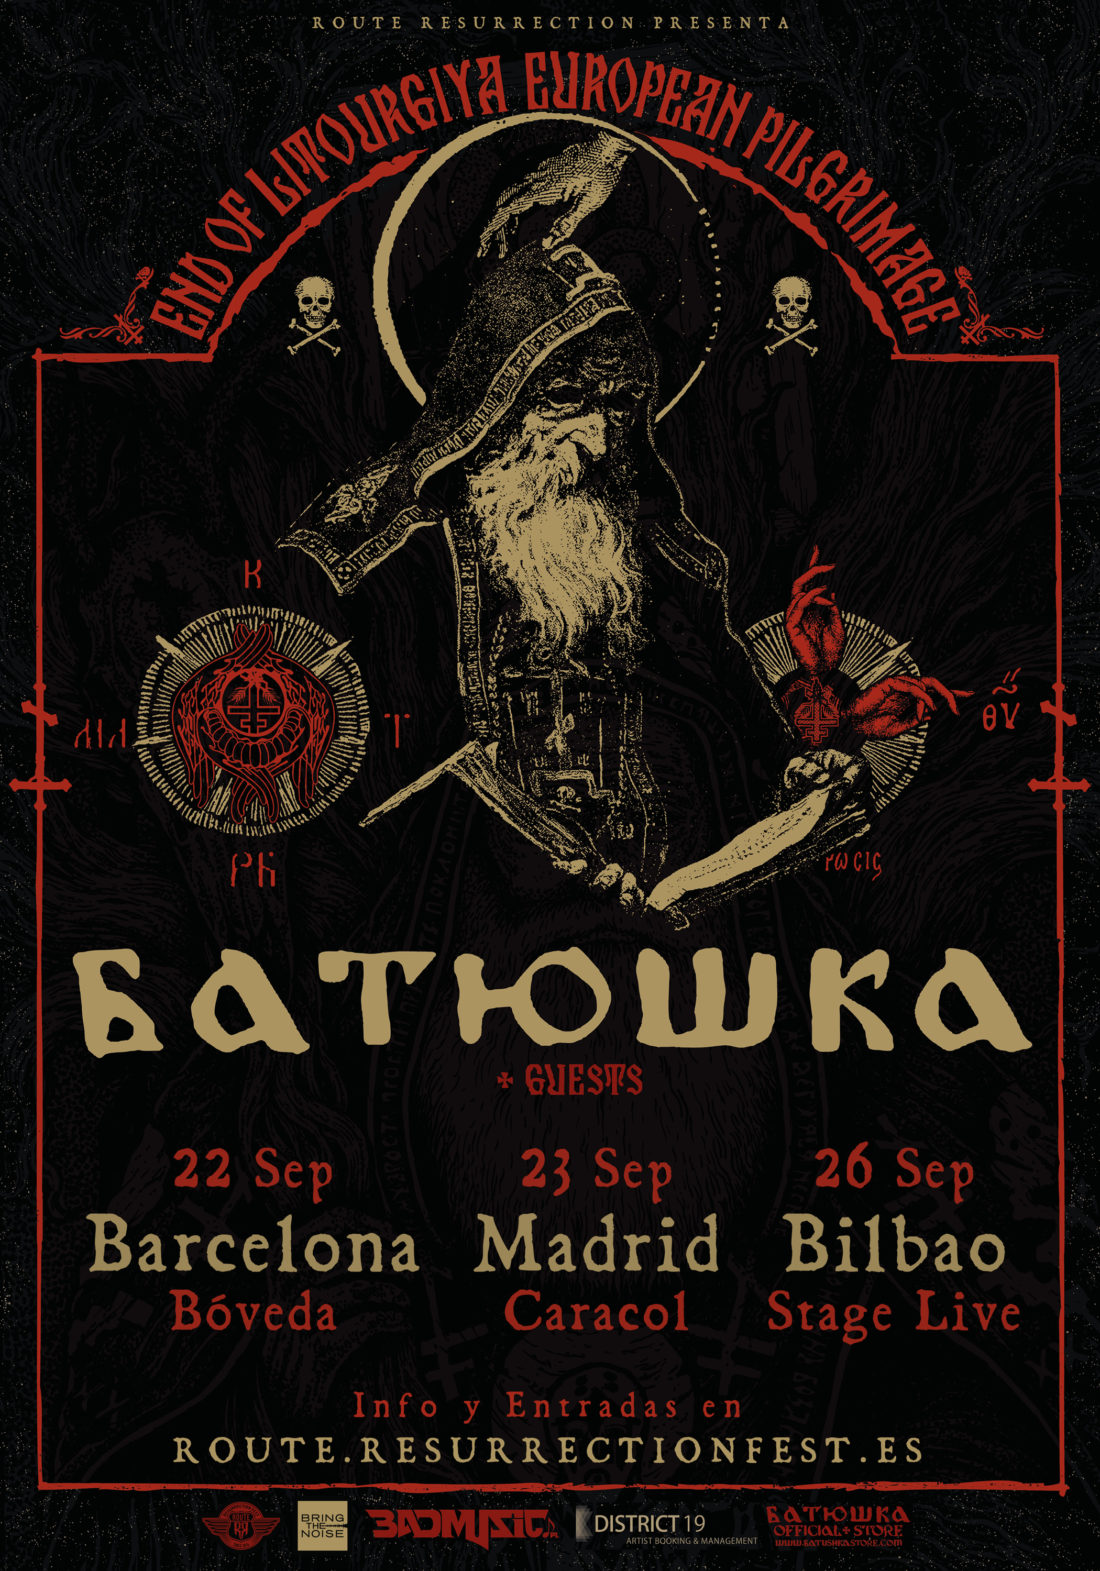 Nueva gira Route Resurrection: Batushka